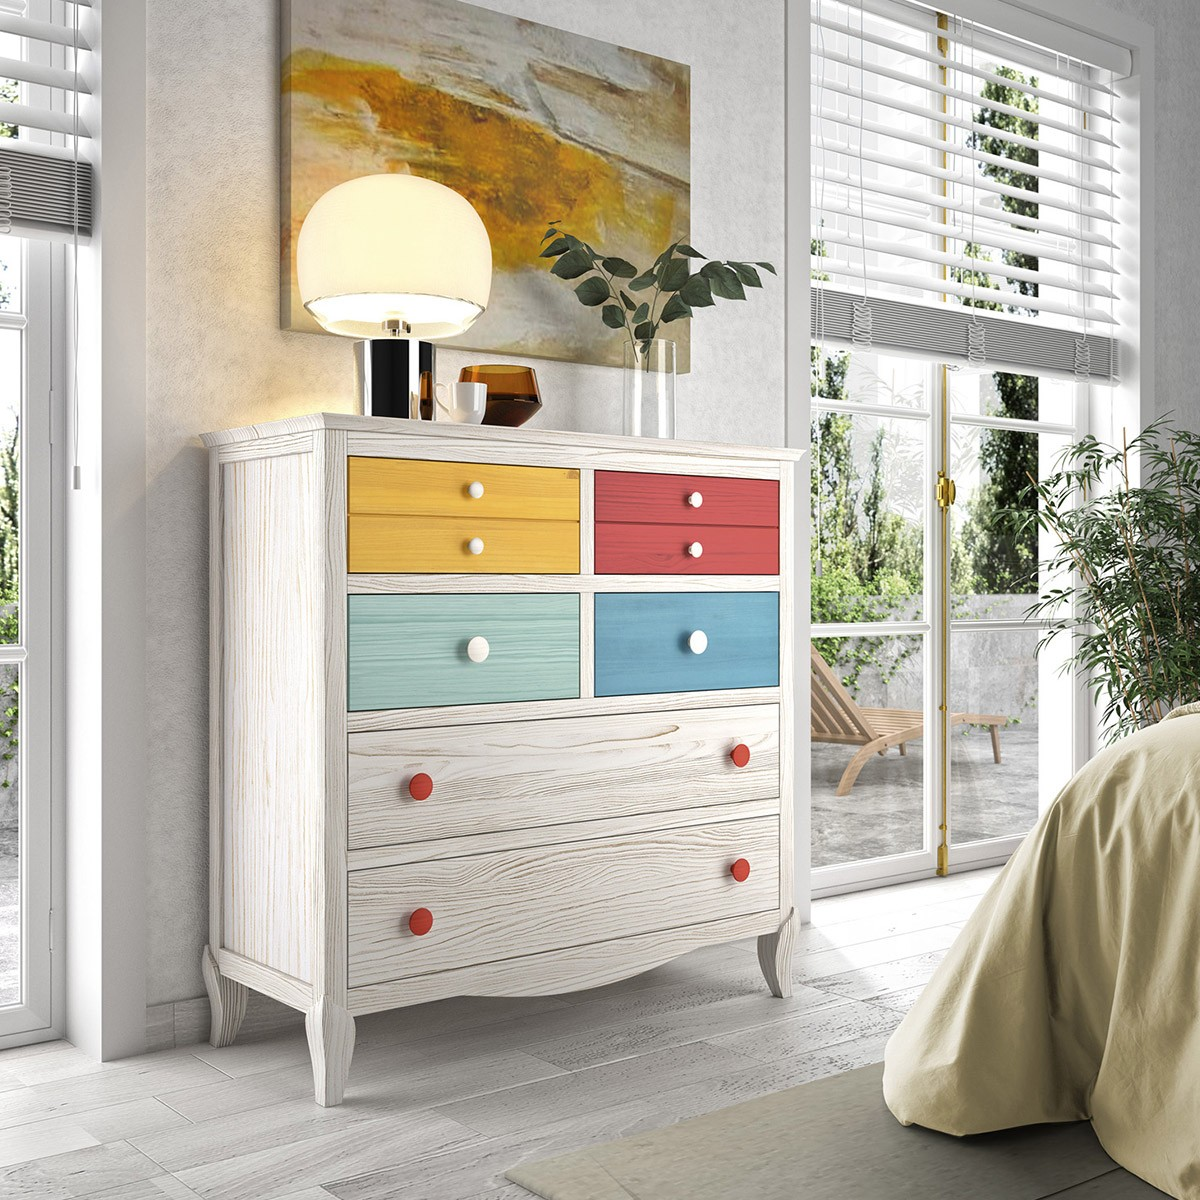 Basilea chest of drawers 30 D